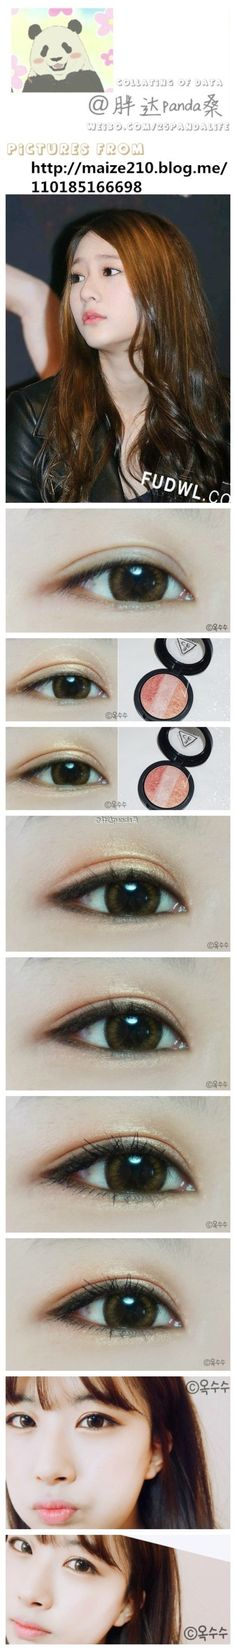 F(x)'s Krystal's make-up look~